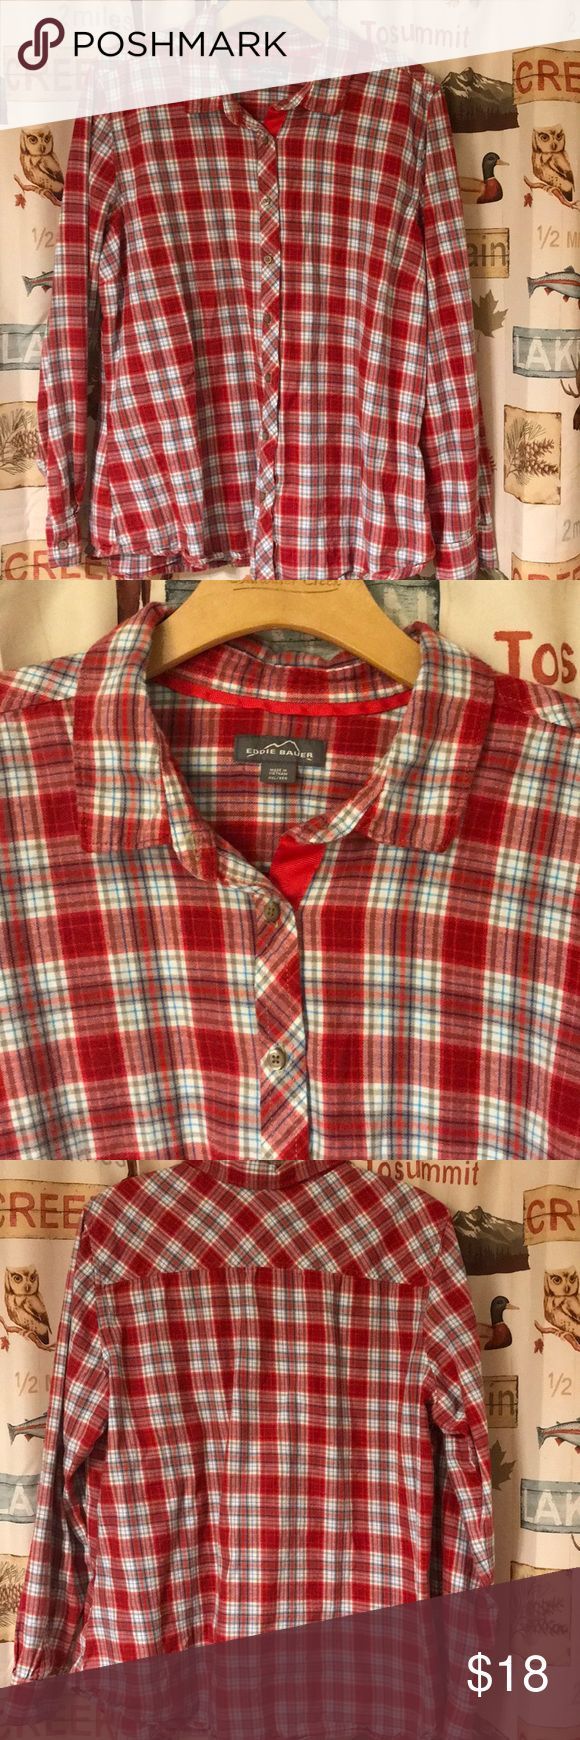 XXL (XL) Eddie Bauer Ladies Flannel Shirt Never worn, but has been washed Fits more like XL Eddie Bauer Tops